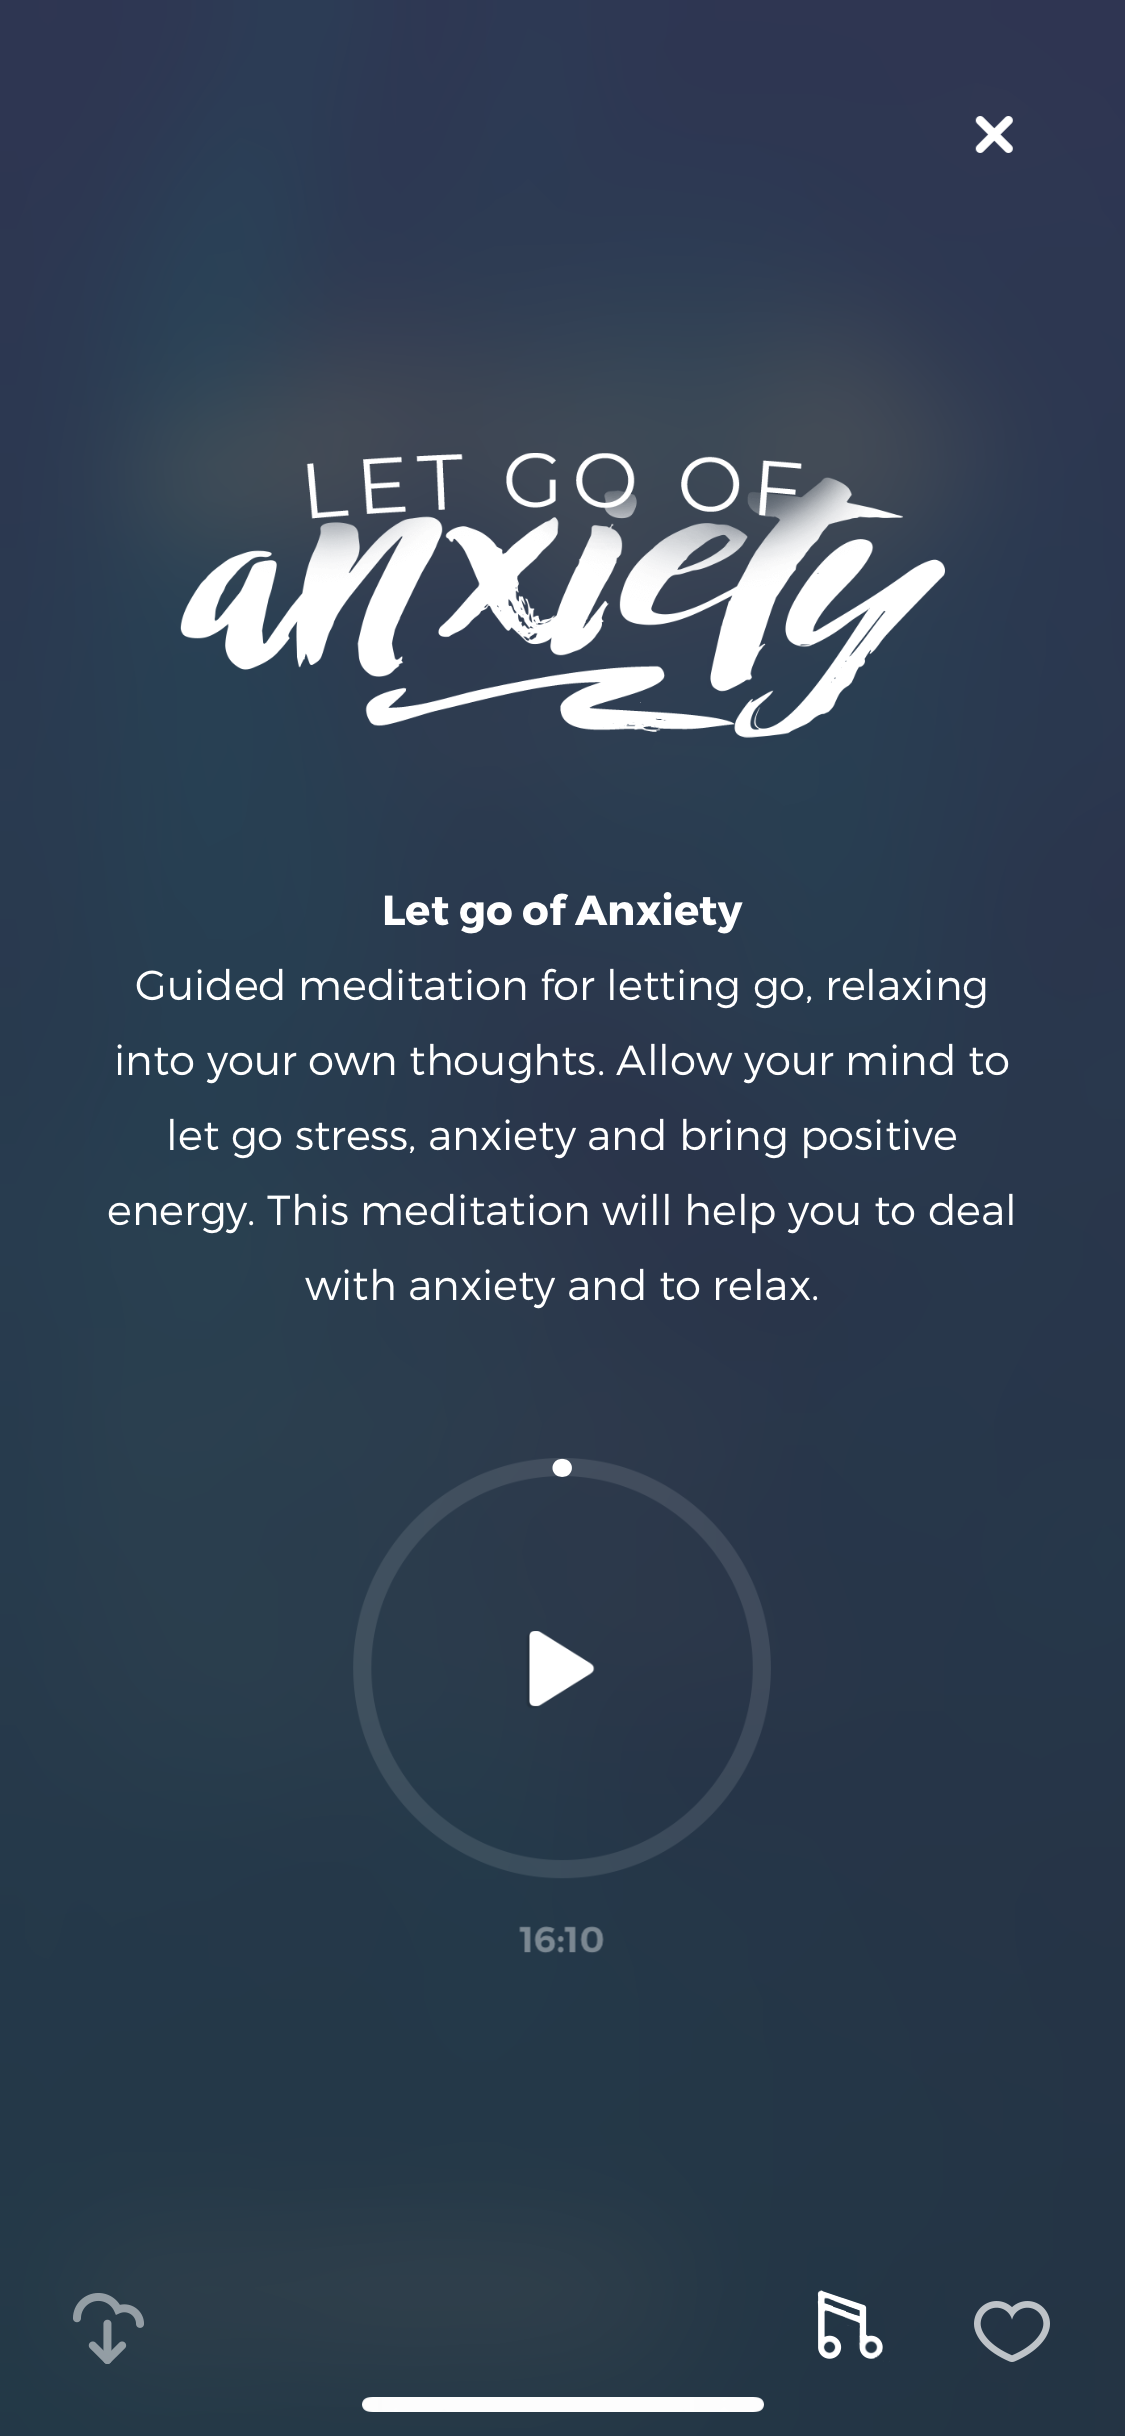 let go of anxiety guided meditation